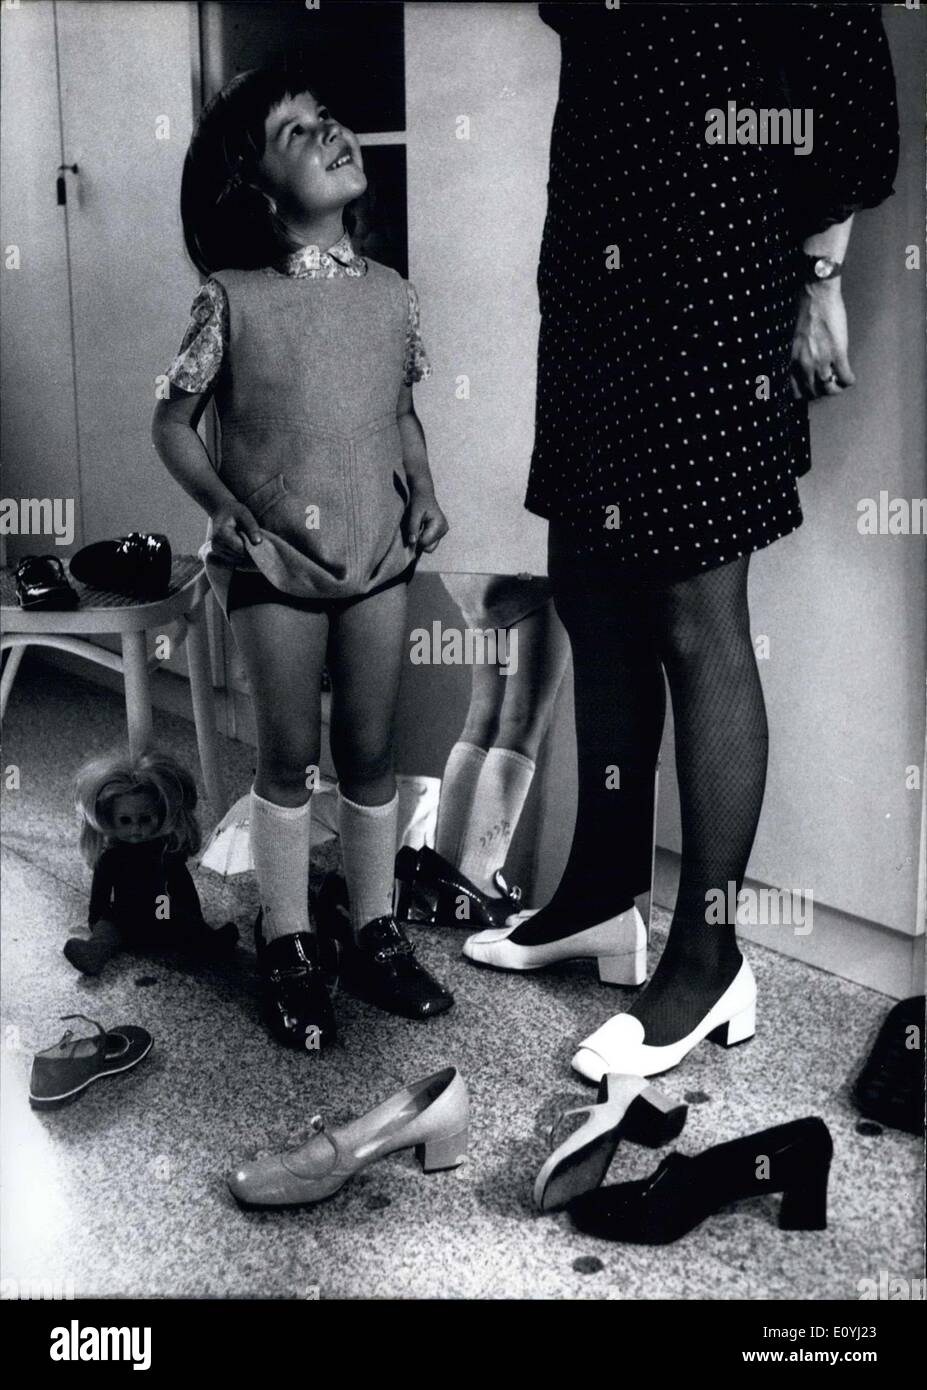 The Shoes 1970 Stockfotos & The Shoes 1970 Bilder Alamy